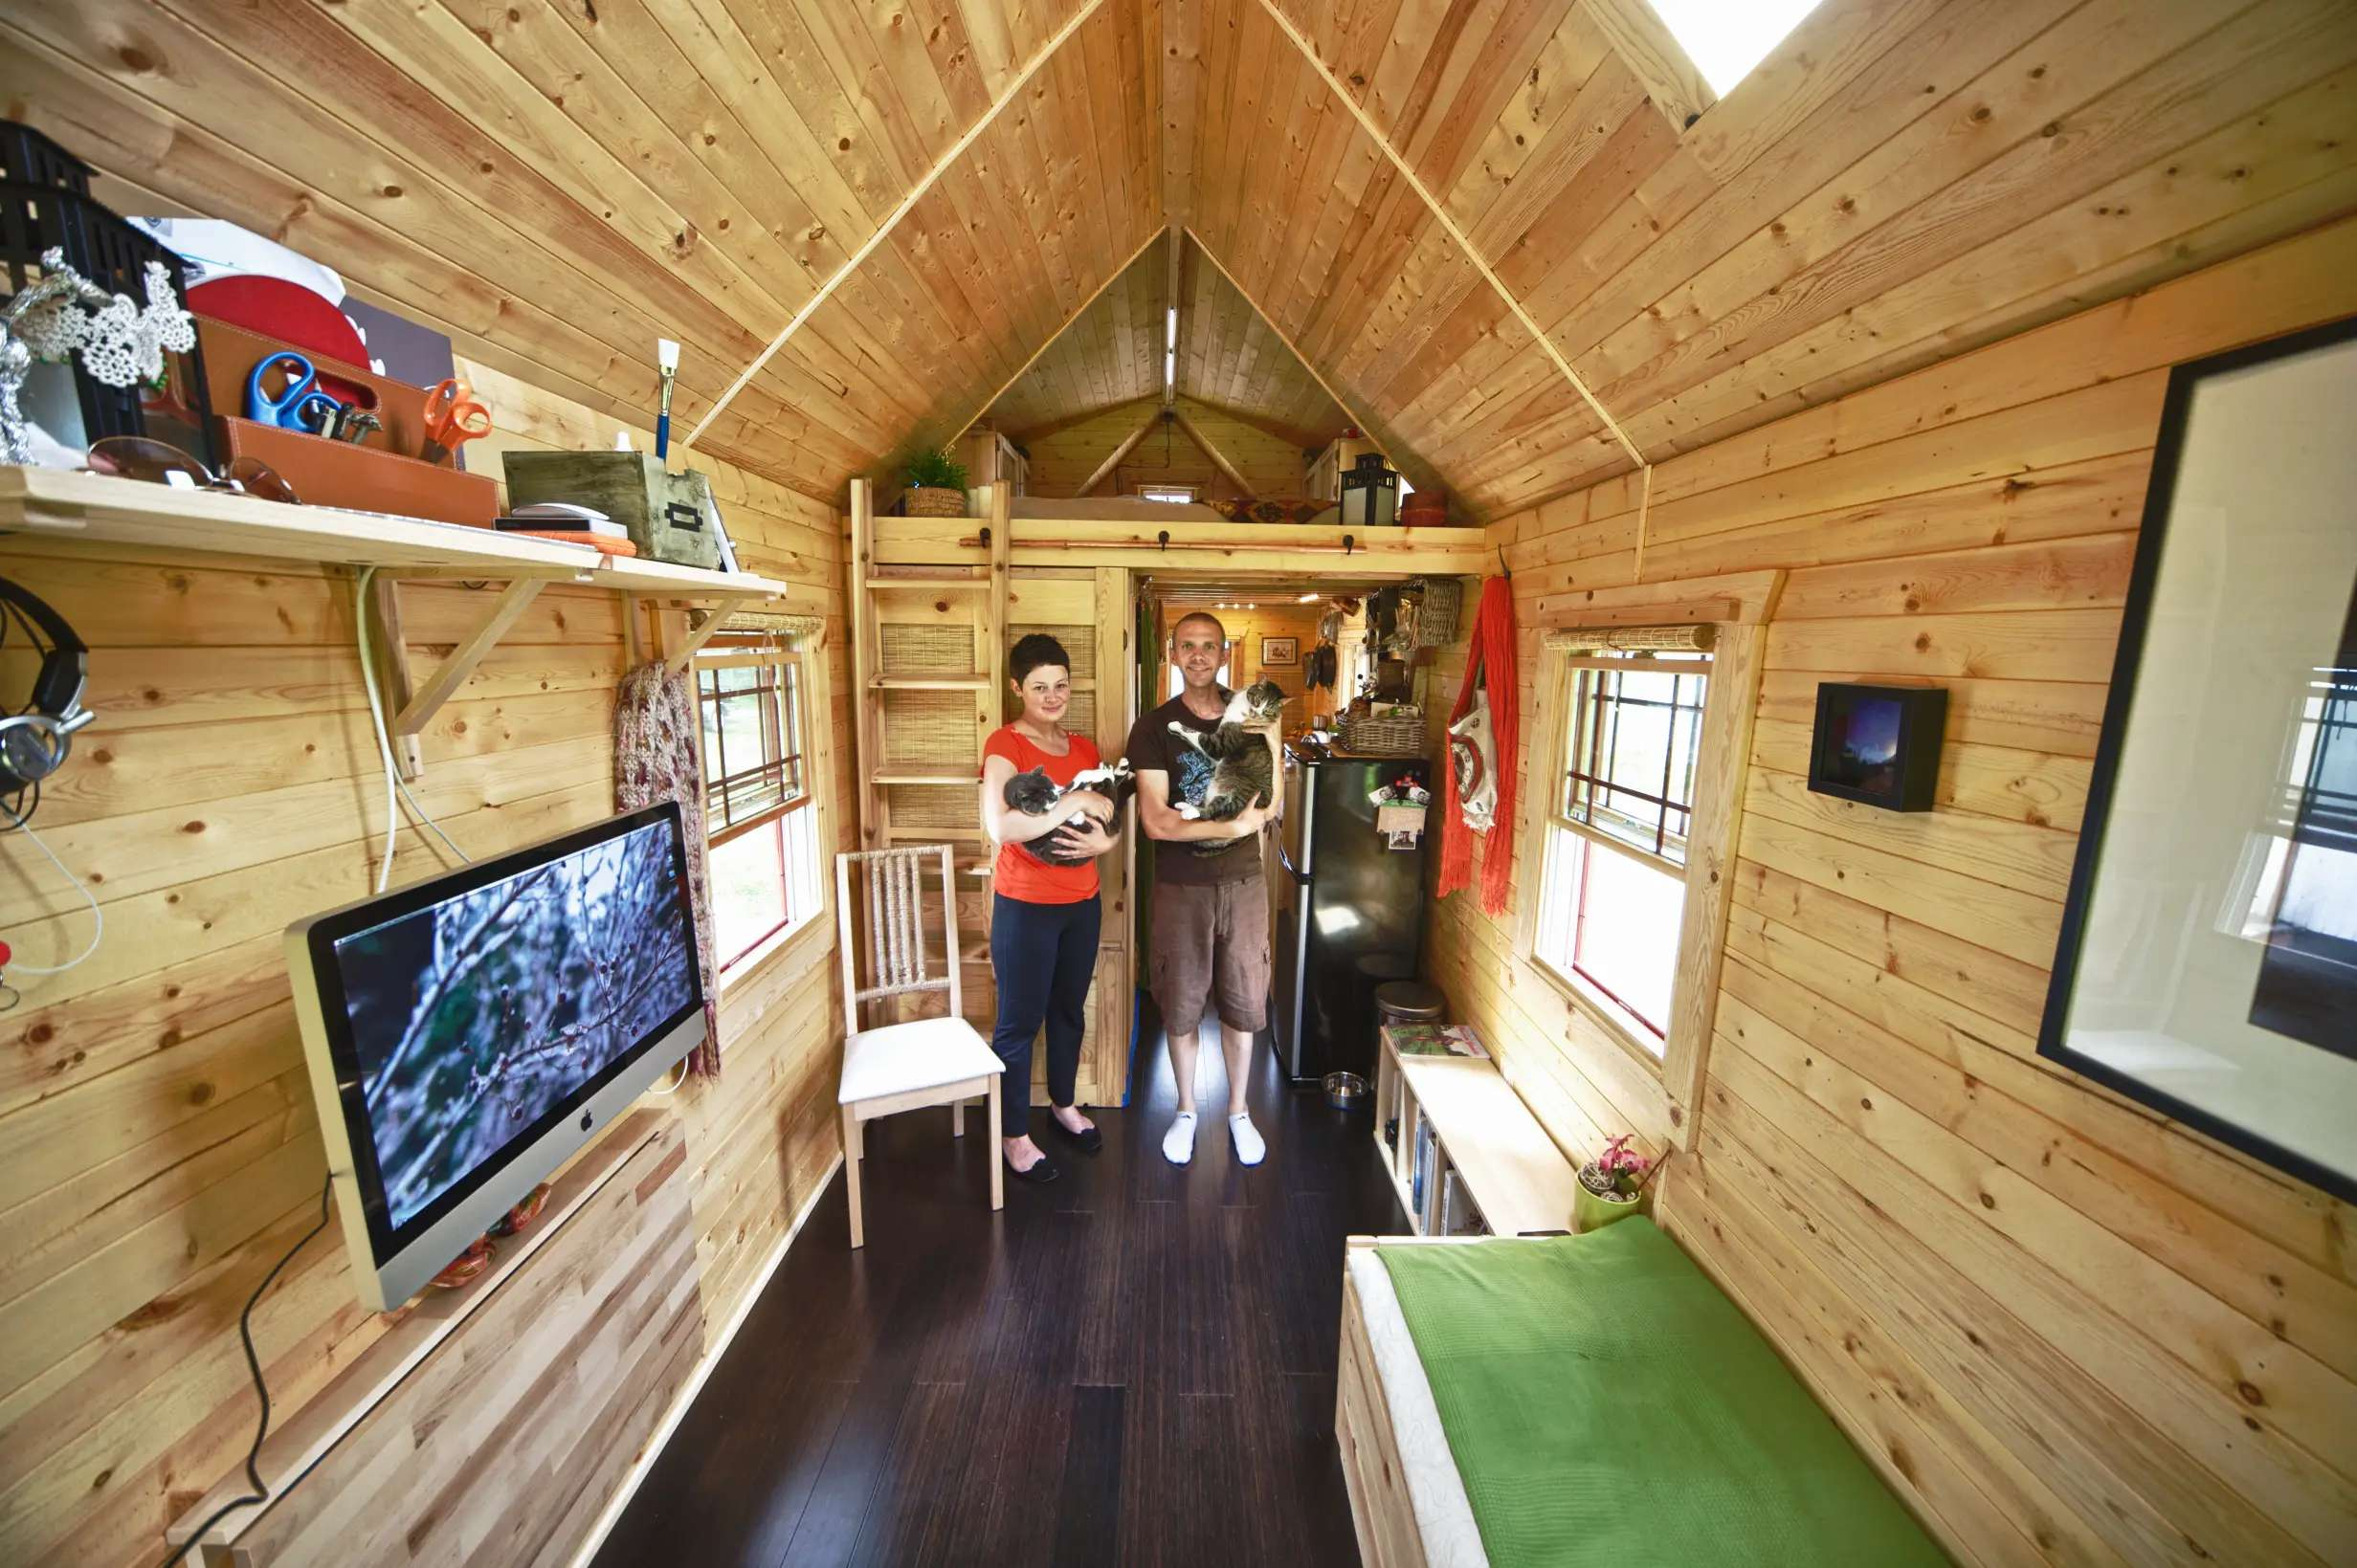 """Chris and Malissa Tack gave up their high-tech lives in 2011 and condensed their world into a """"tiny house"""" in the town of Snohomish, Washington. Their new home is only 140-square-feet."""